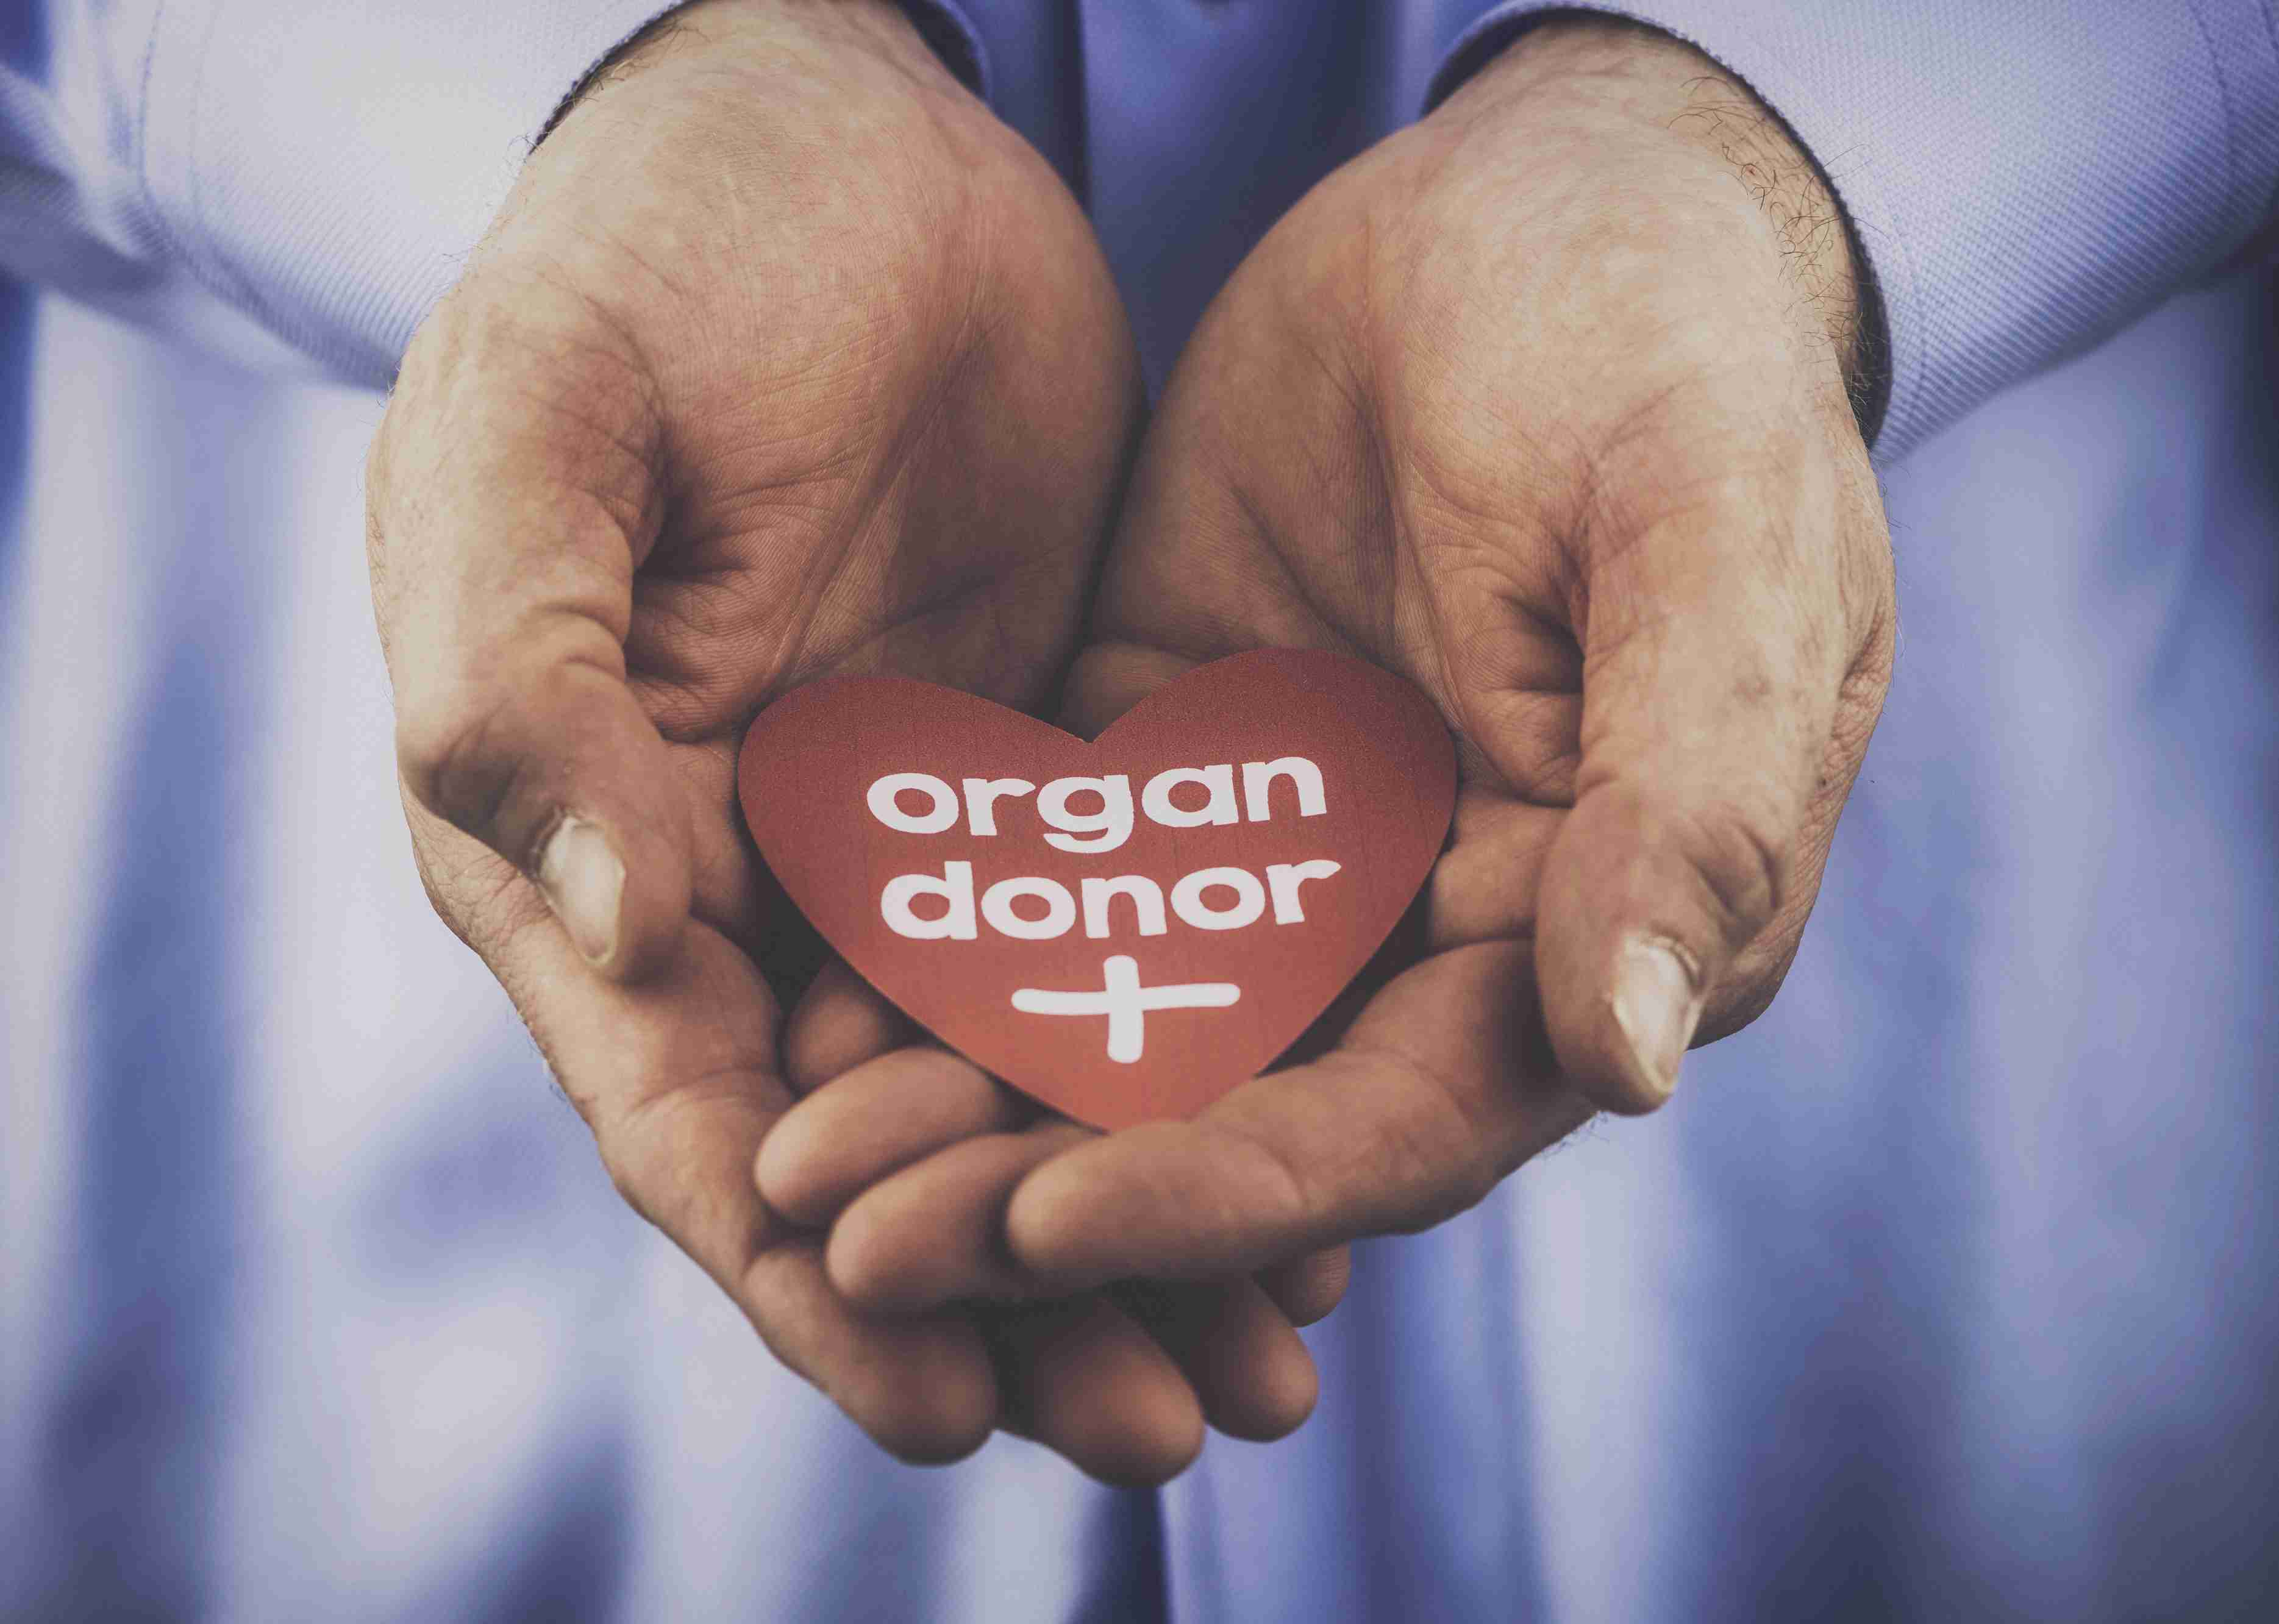 How To Donate An Organ To A Friend Or Family Member